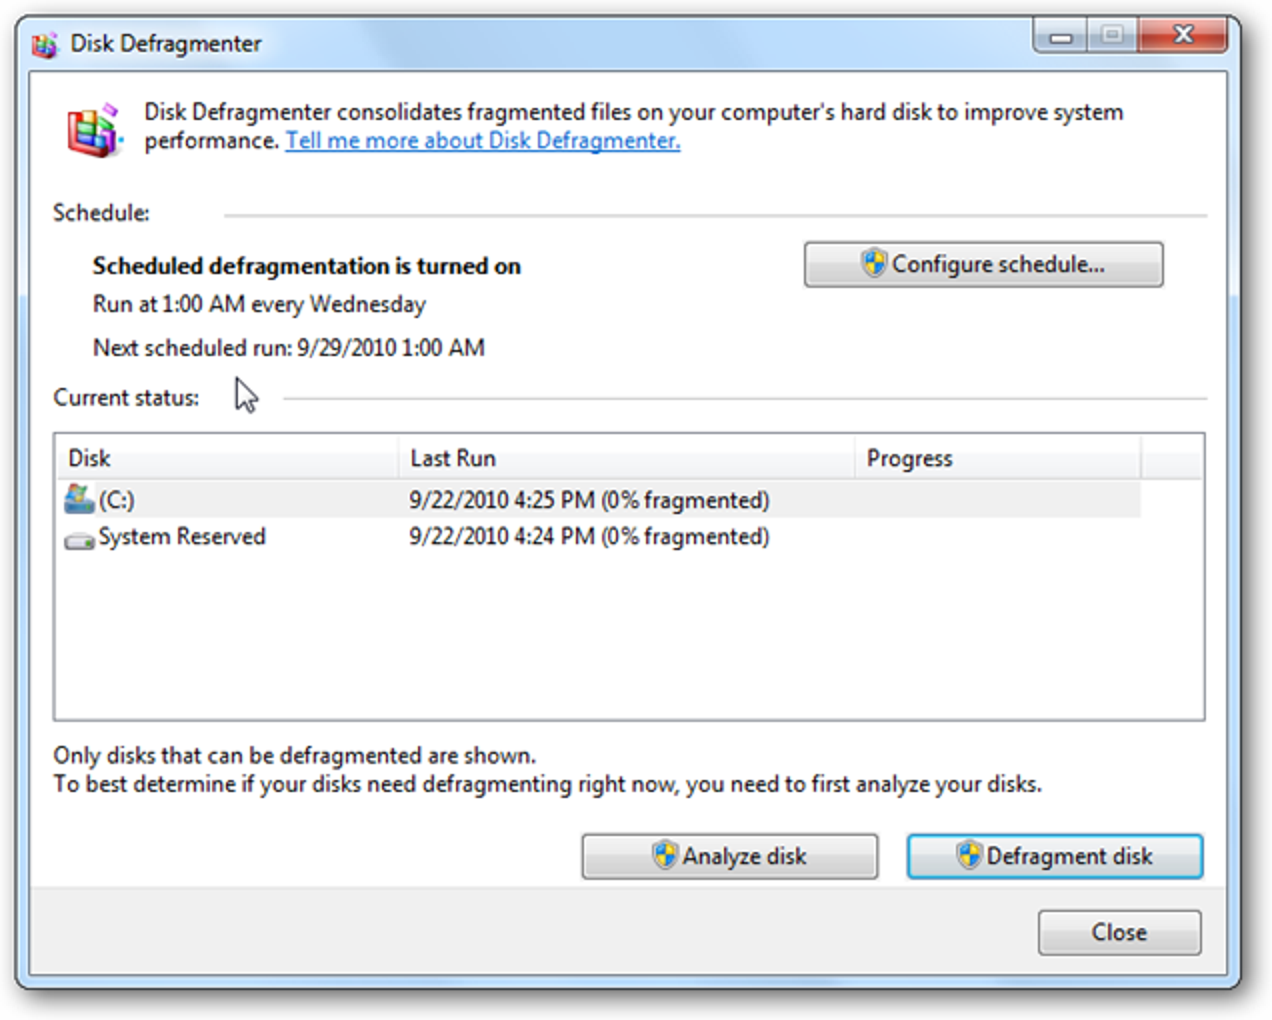 Create Your Own Windows 7 Style Automatic Defrag In Windows Xp